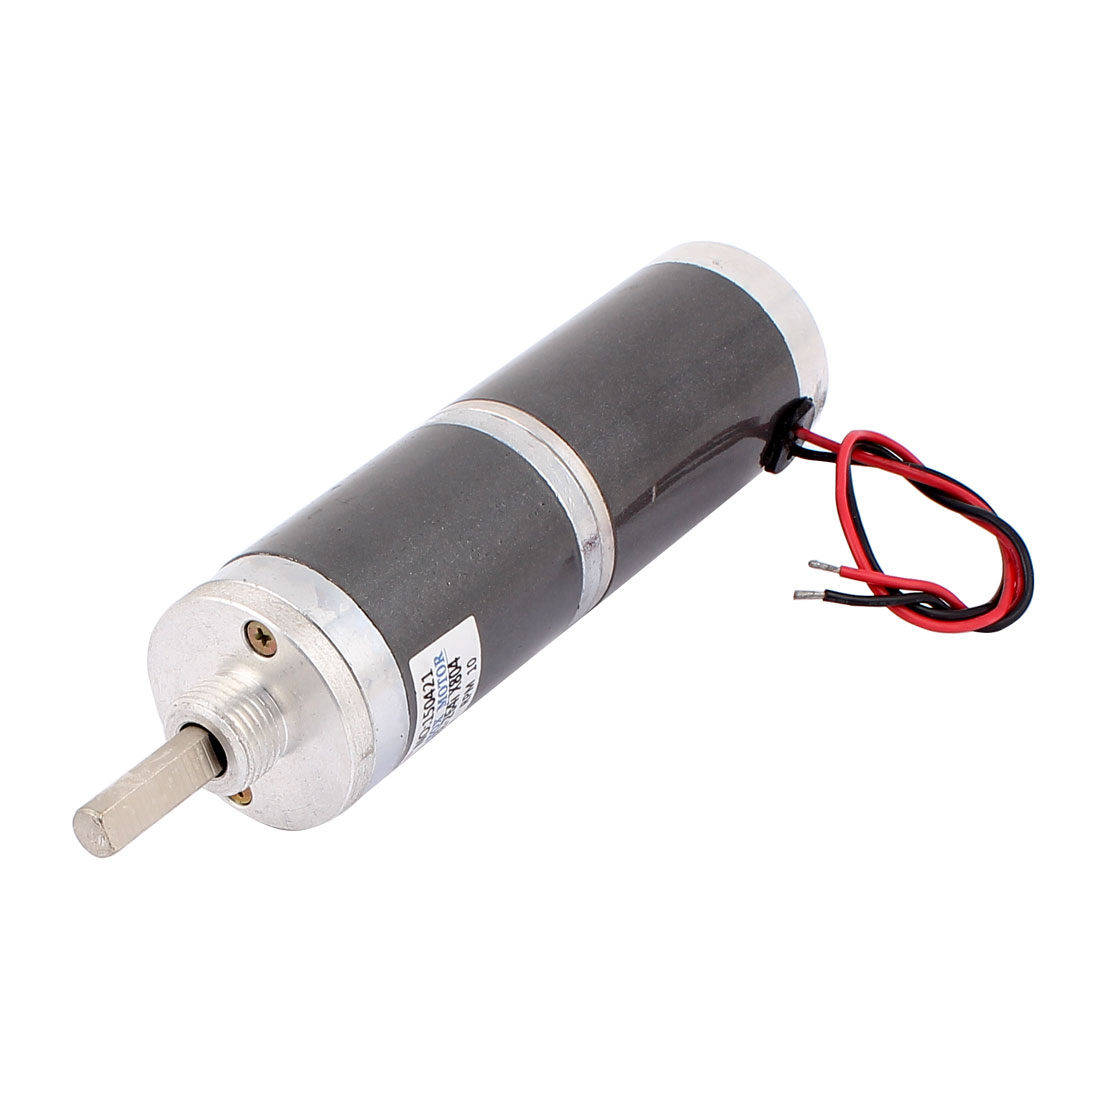 DC 12V 10RPM 8mm Shaft Magnetic Electric Gear Box Motor Replacement